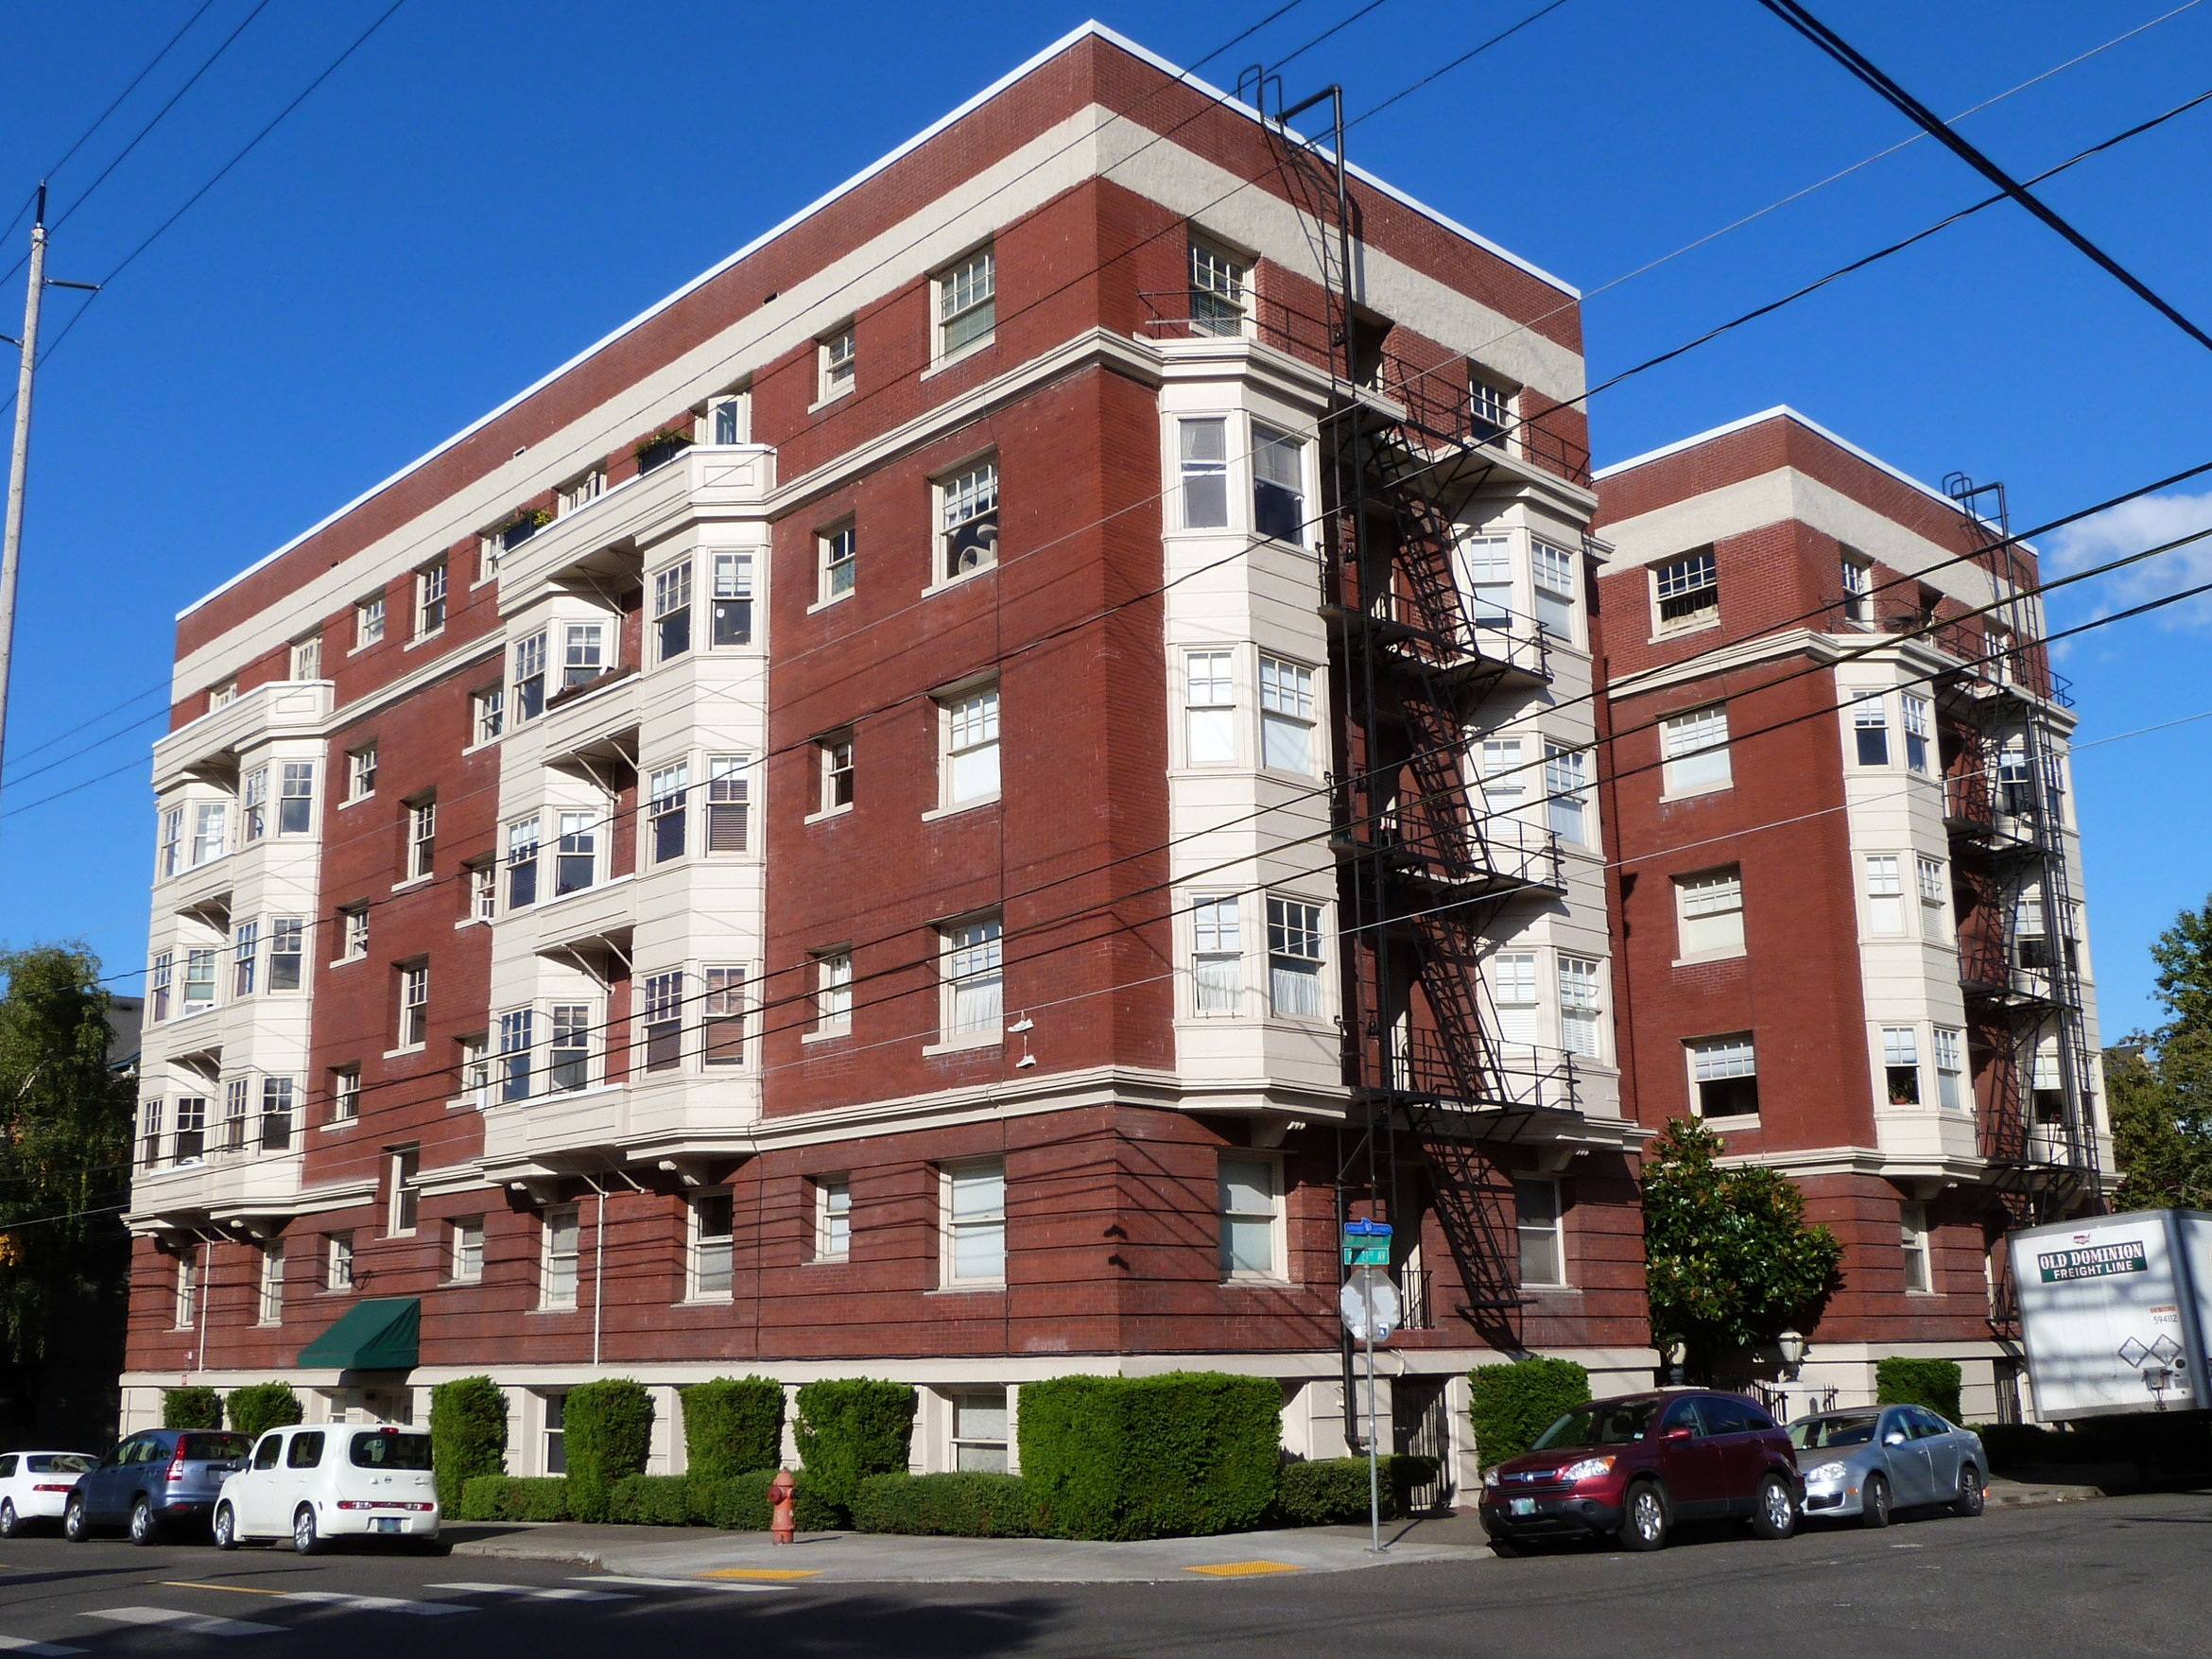 American_Apartment_Building_-_Portland_Oregon.jpg